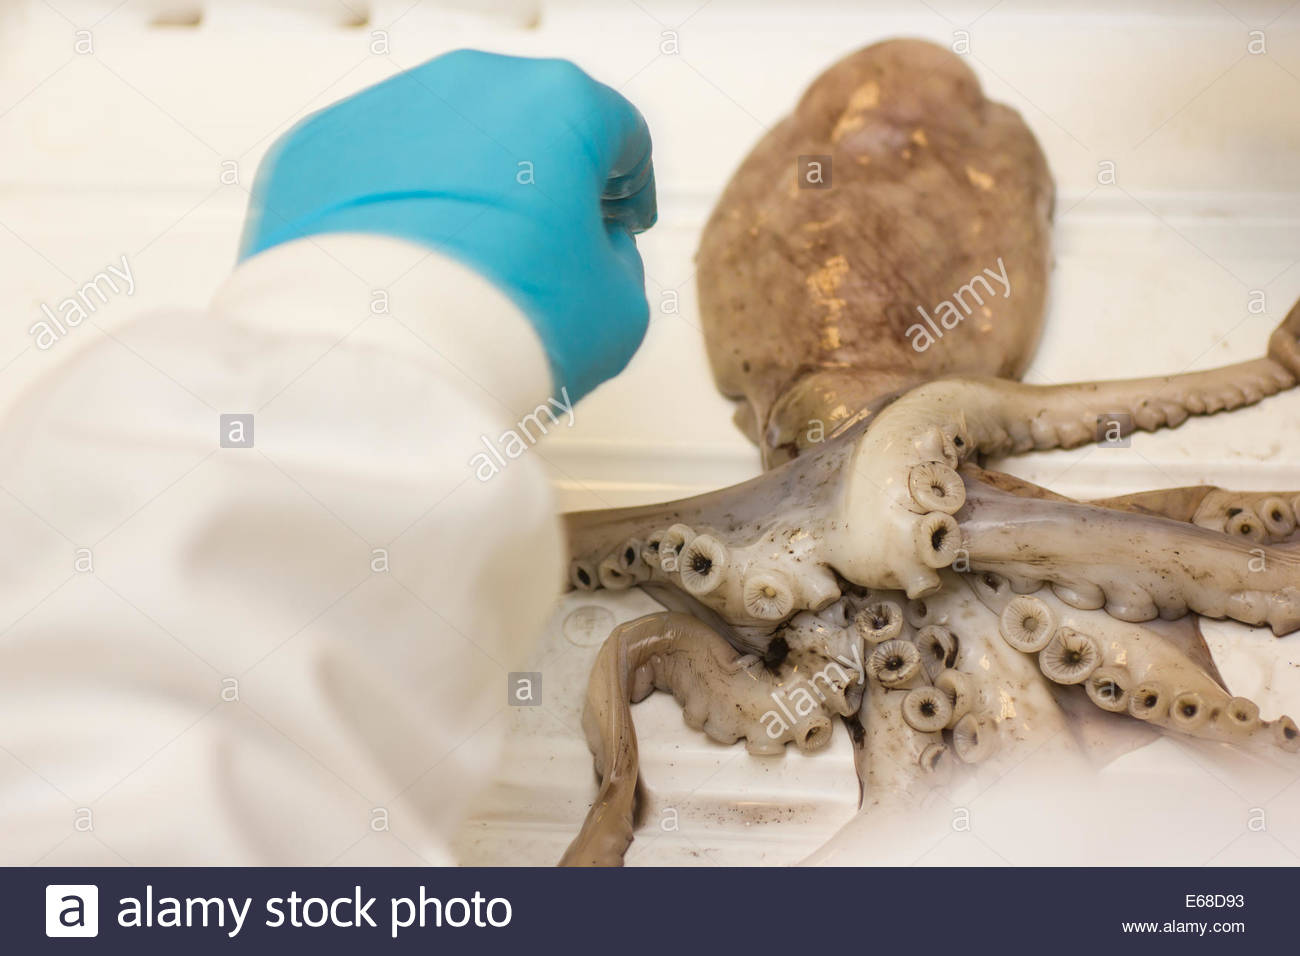 European squid Loligo vulgaris, in a lab environment this shop bought squid is prepared for dissection, Nottingham, - Stock Image